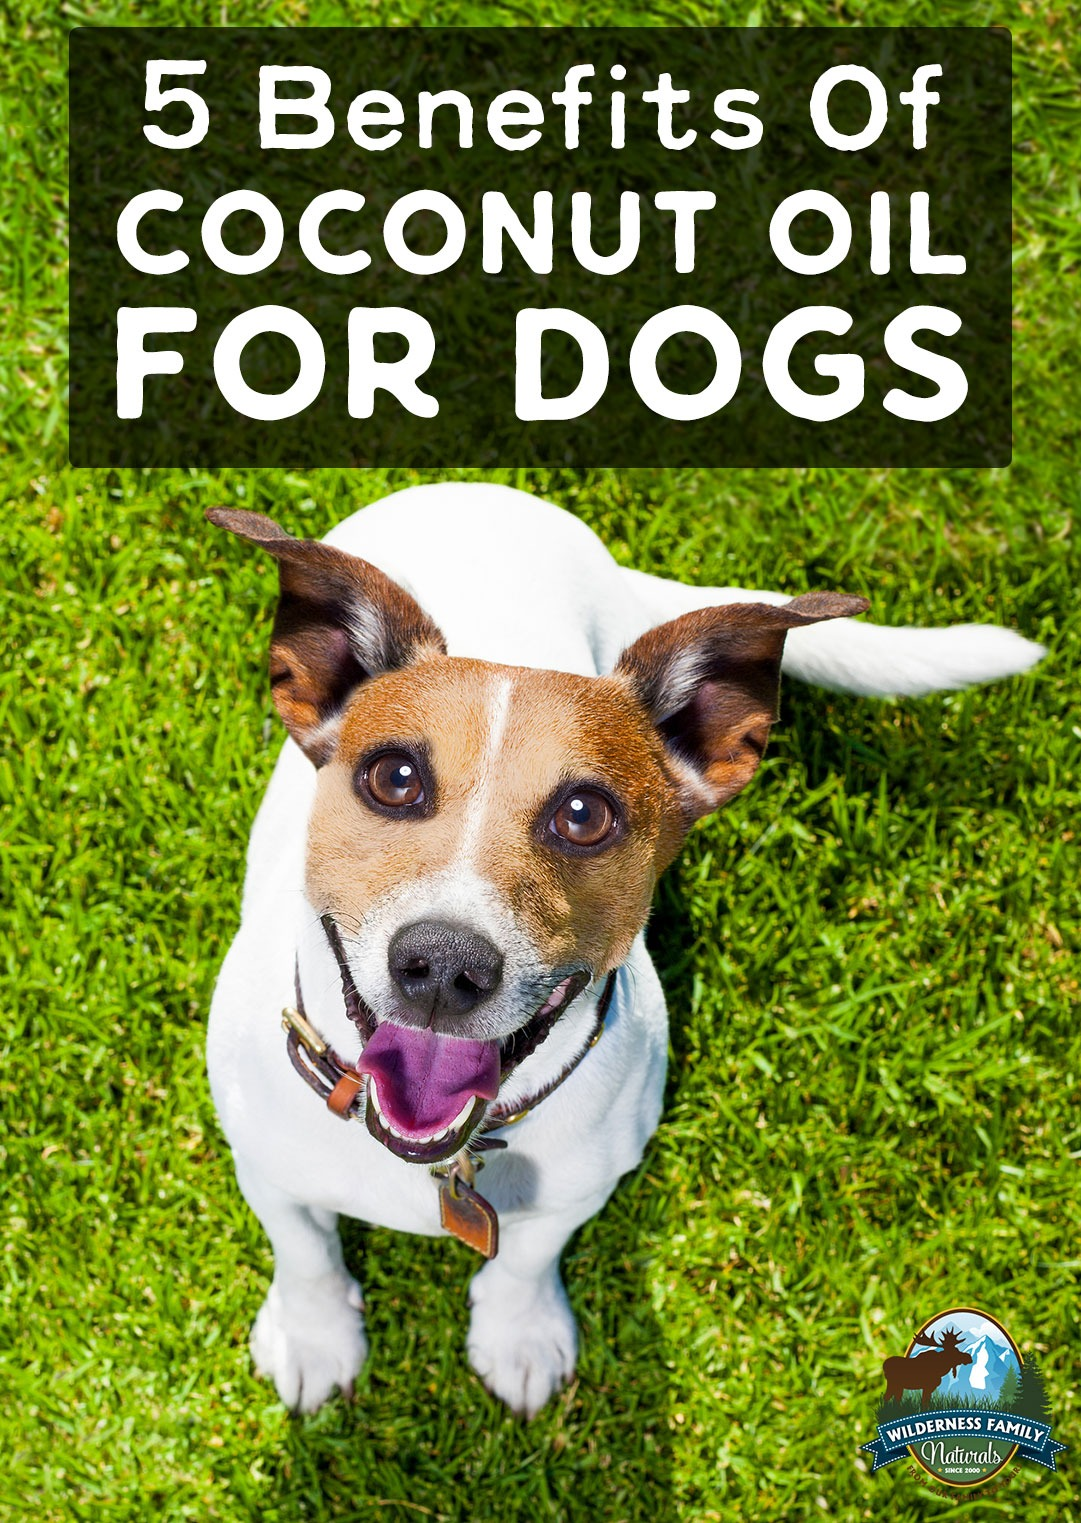 5 Benefits Of Coconut Oil For Dogs